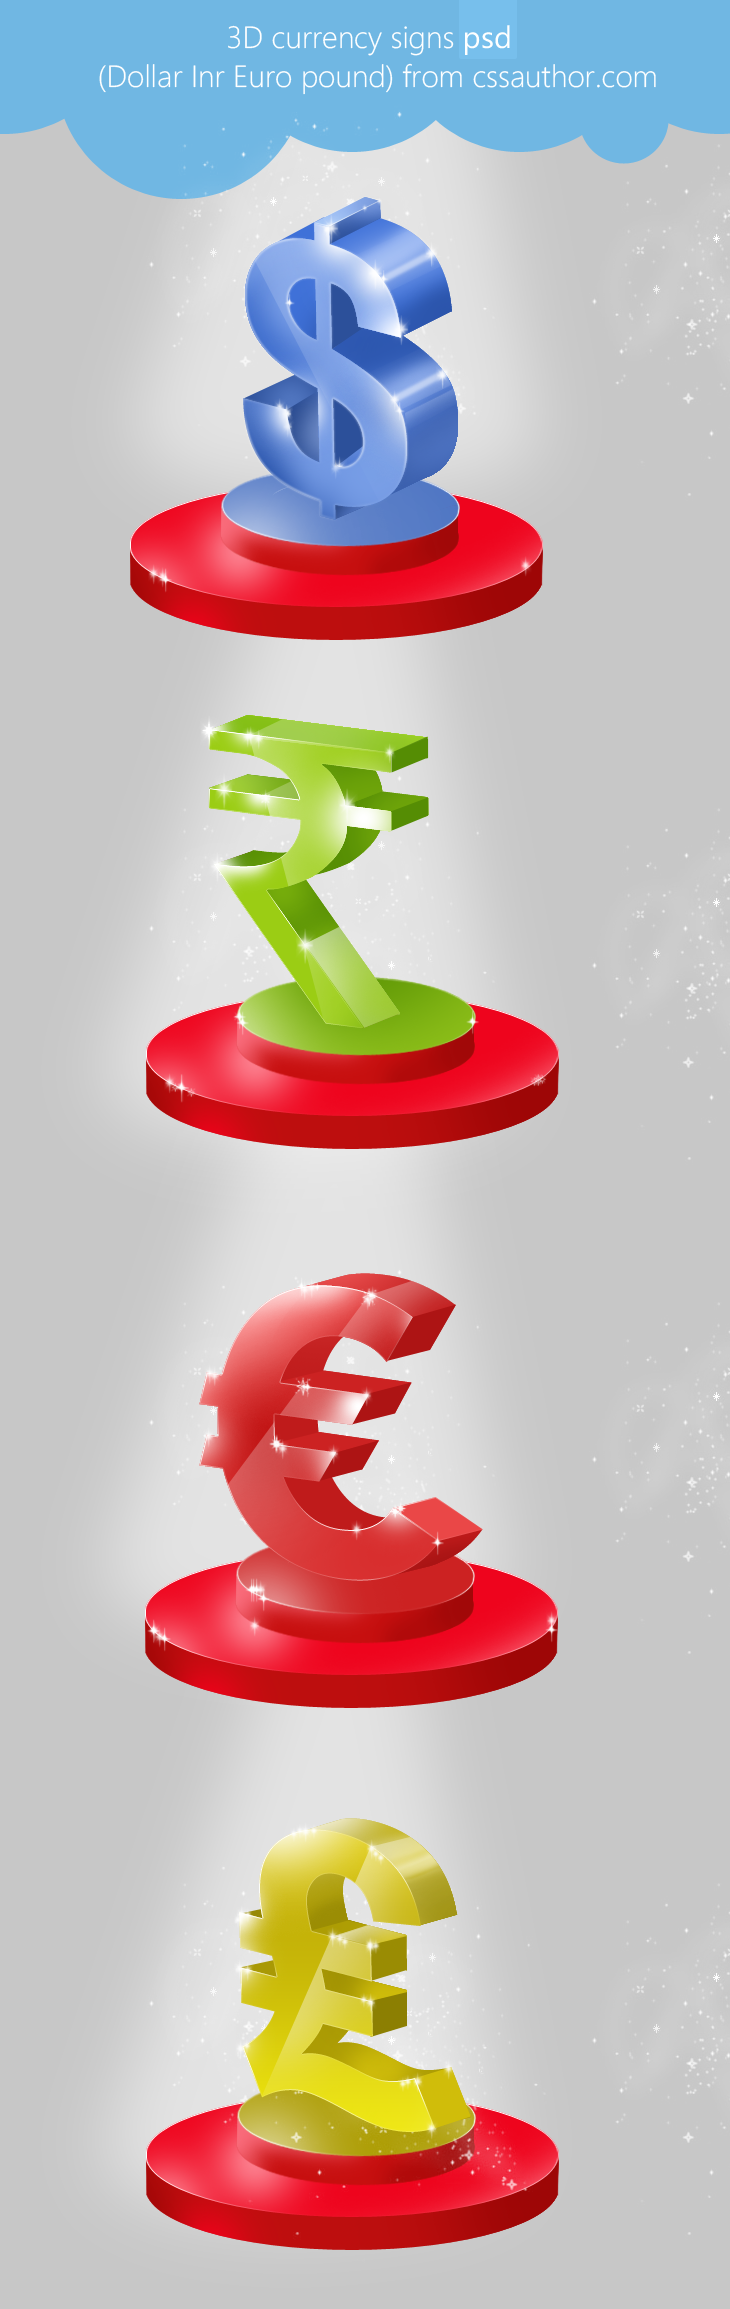 Beautiful 3D Currency Signs PSD for Free Download - cssauthor.com